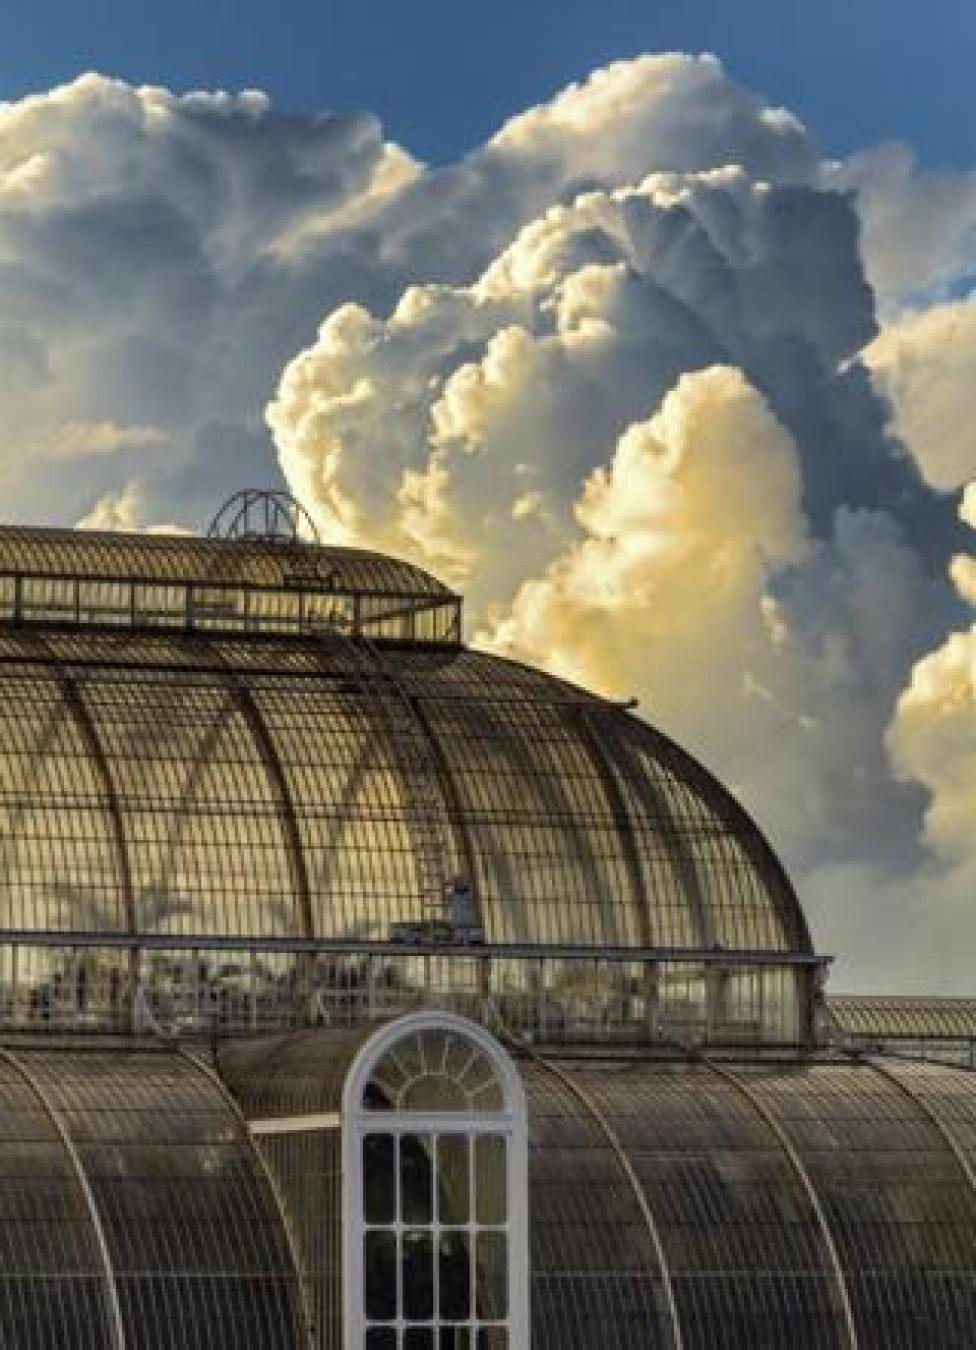 A very large greenhouse with the sky behind it